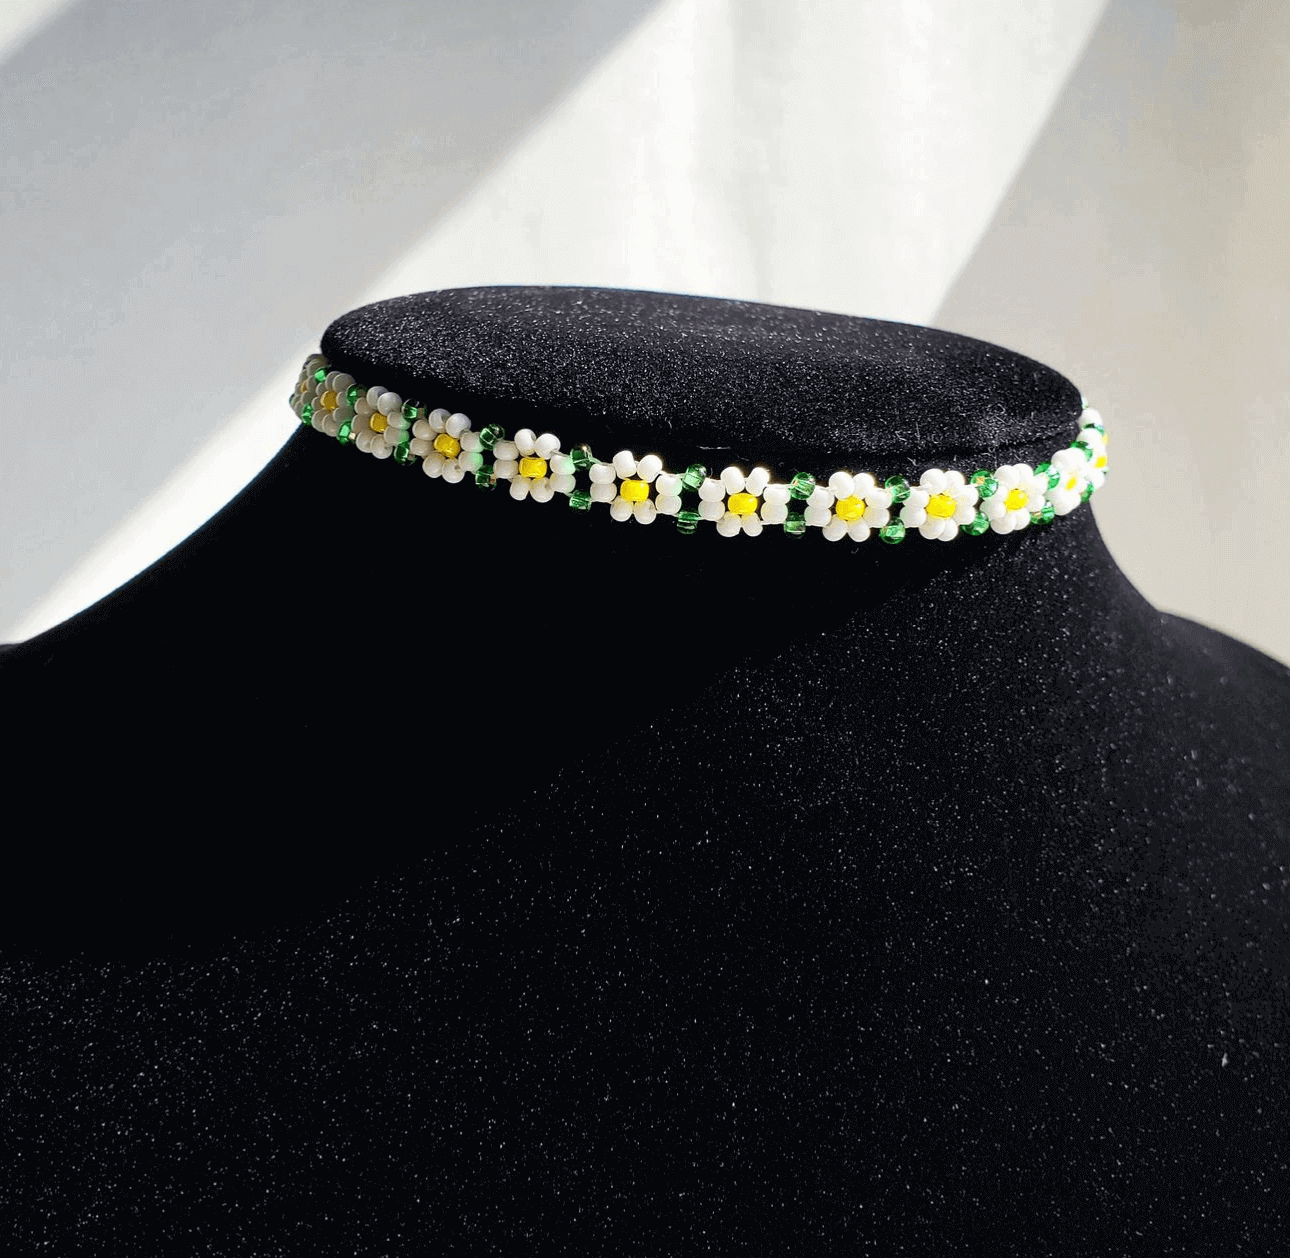 A beaded choker featuring a pattern resembling daisies on a black mannequin.